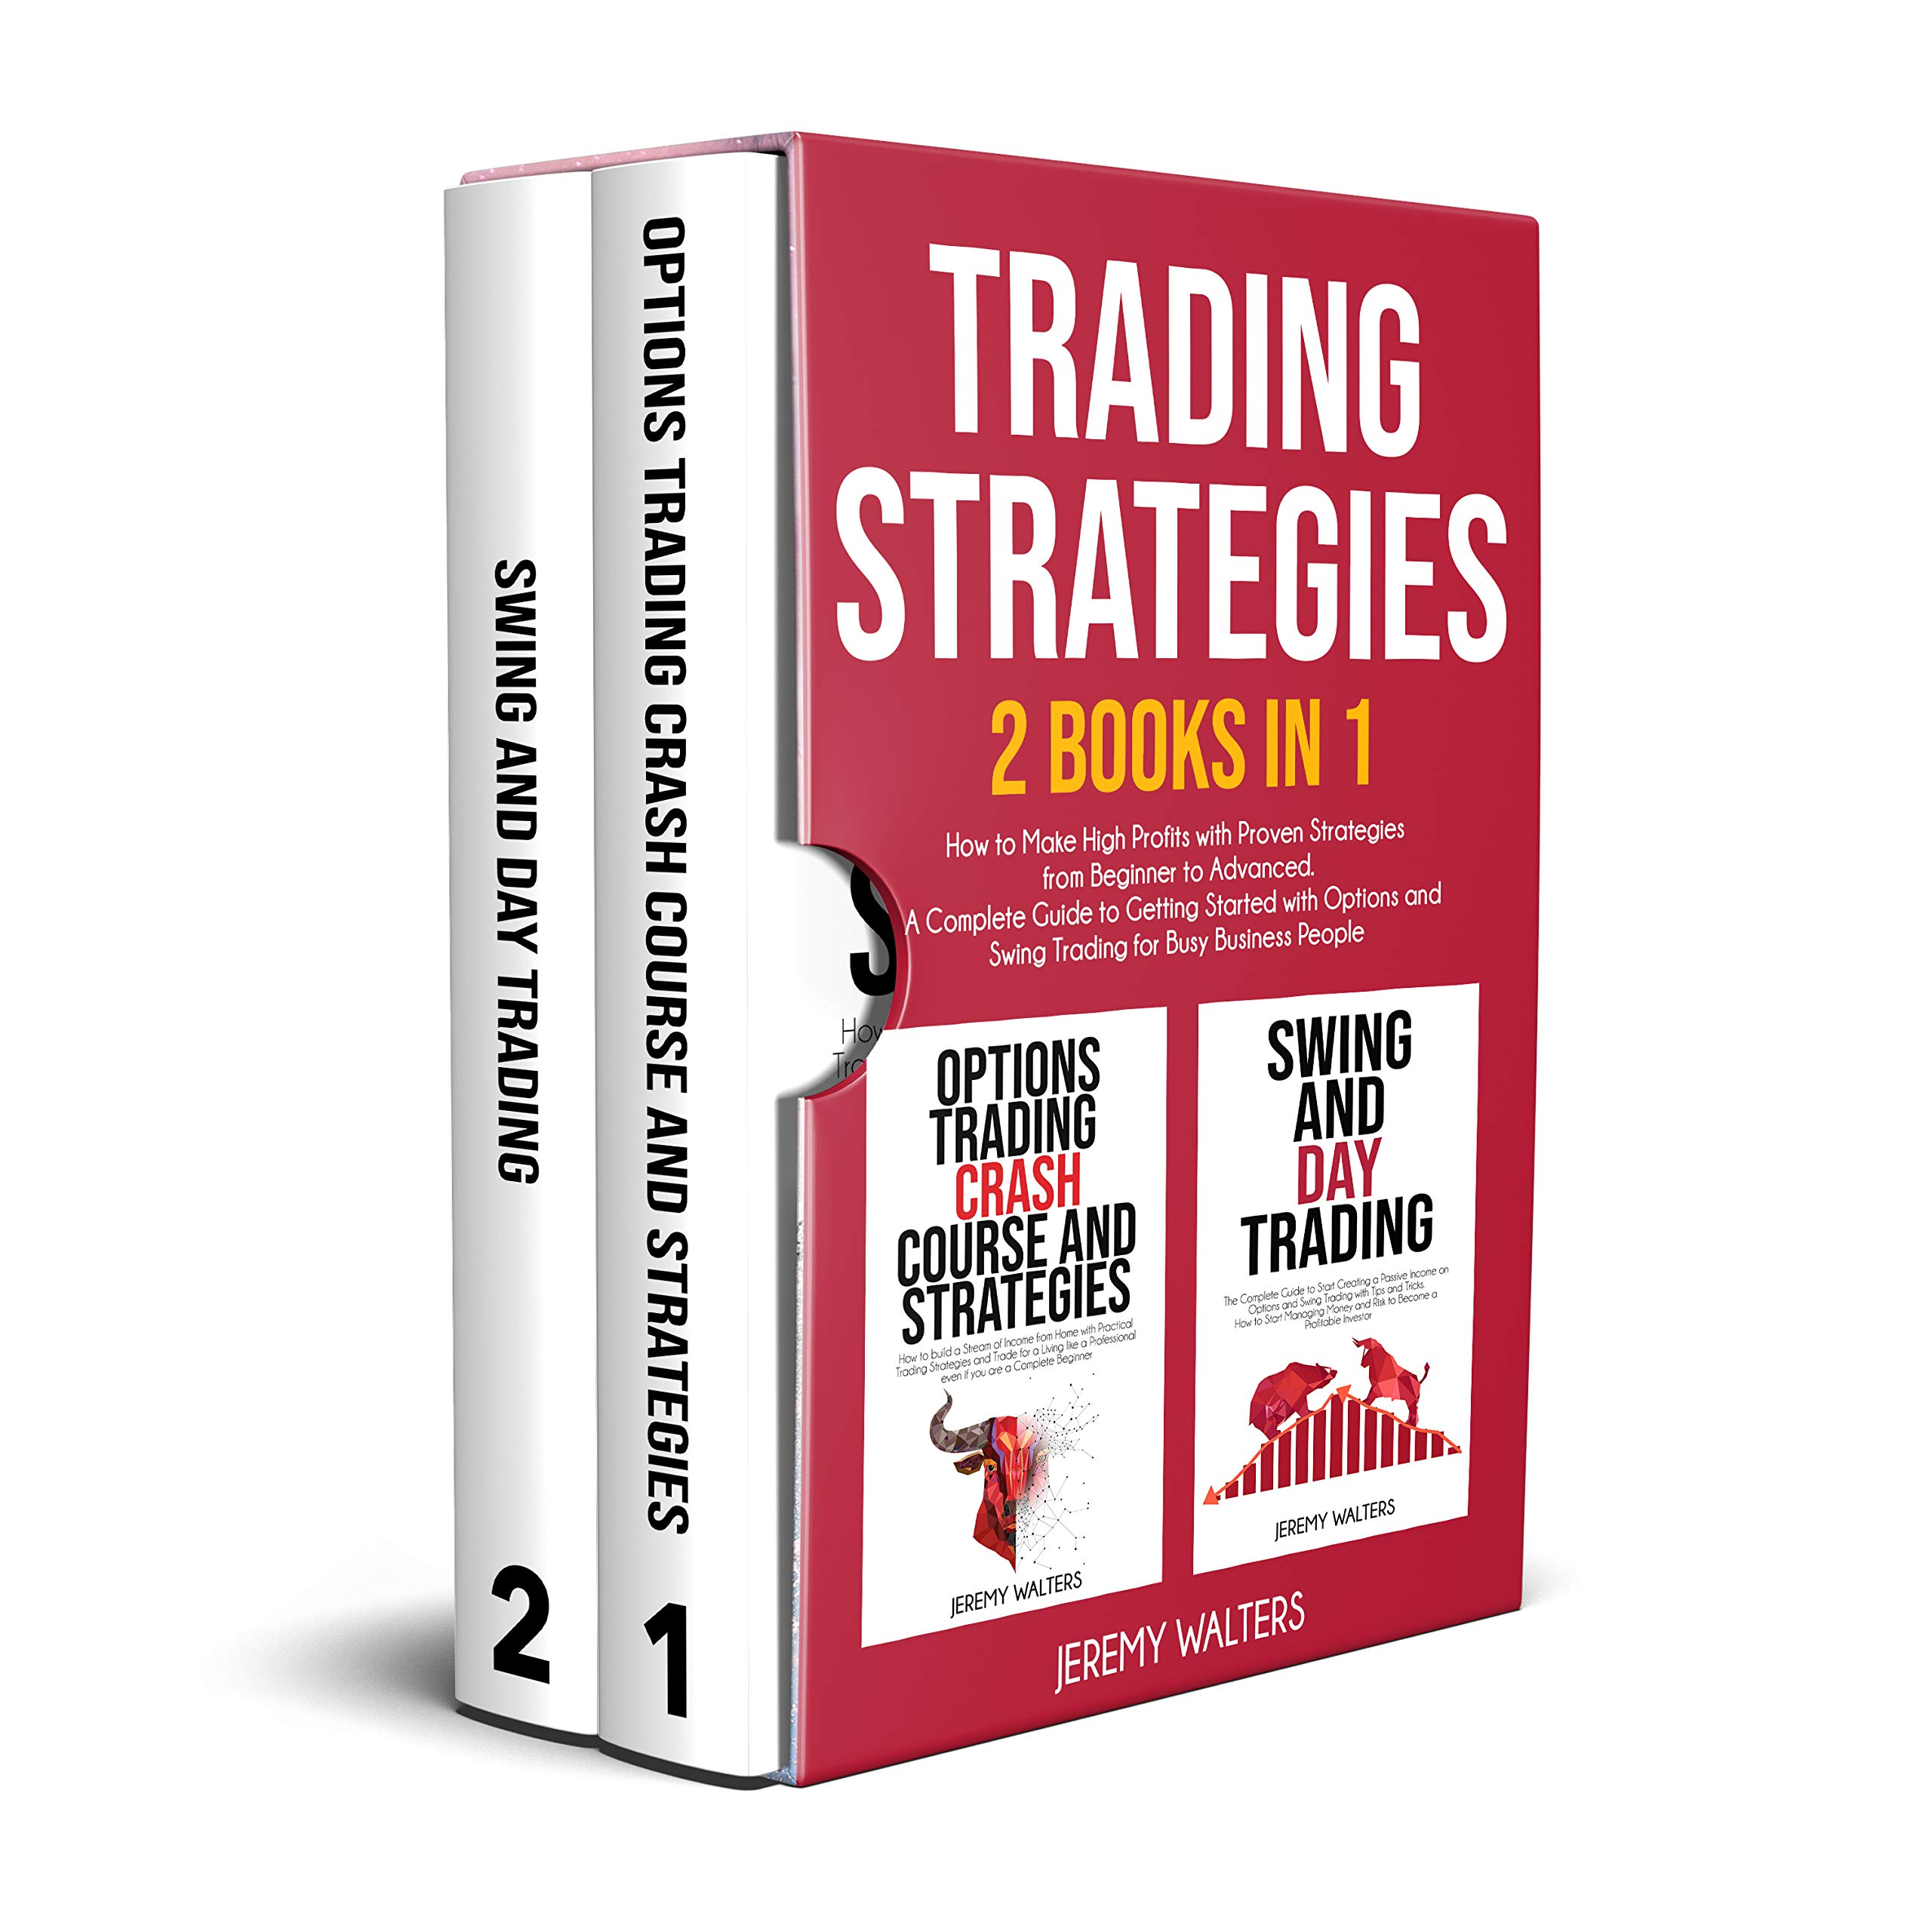 Trading Strategies: 2 Books in 1: How to Make High Profits with Easy Strategies from Beginner to Advanced. A Complete Guide to Getting Started with Options and Swing Trading for Busy Business People